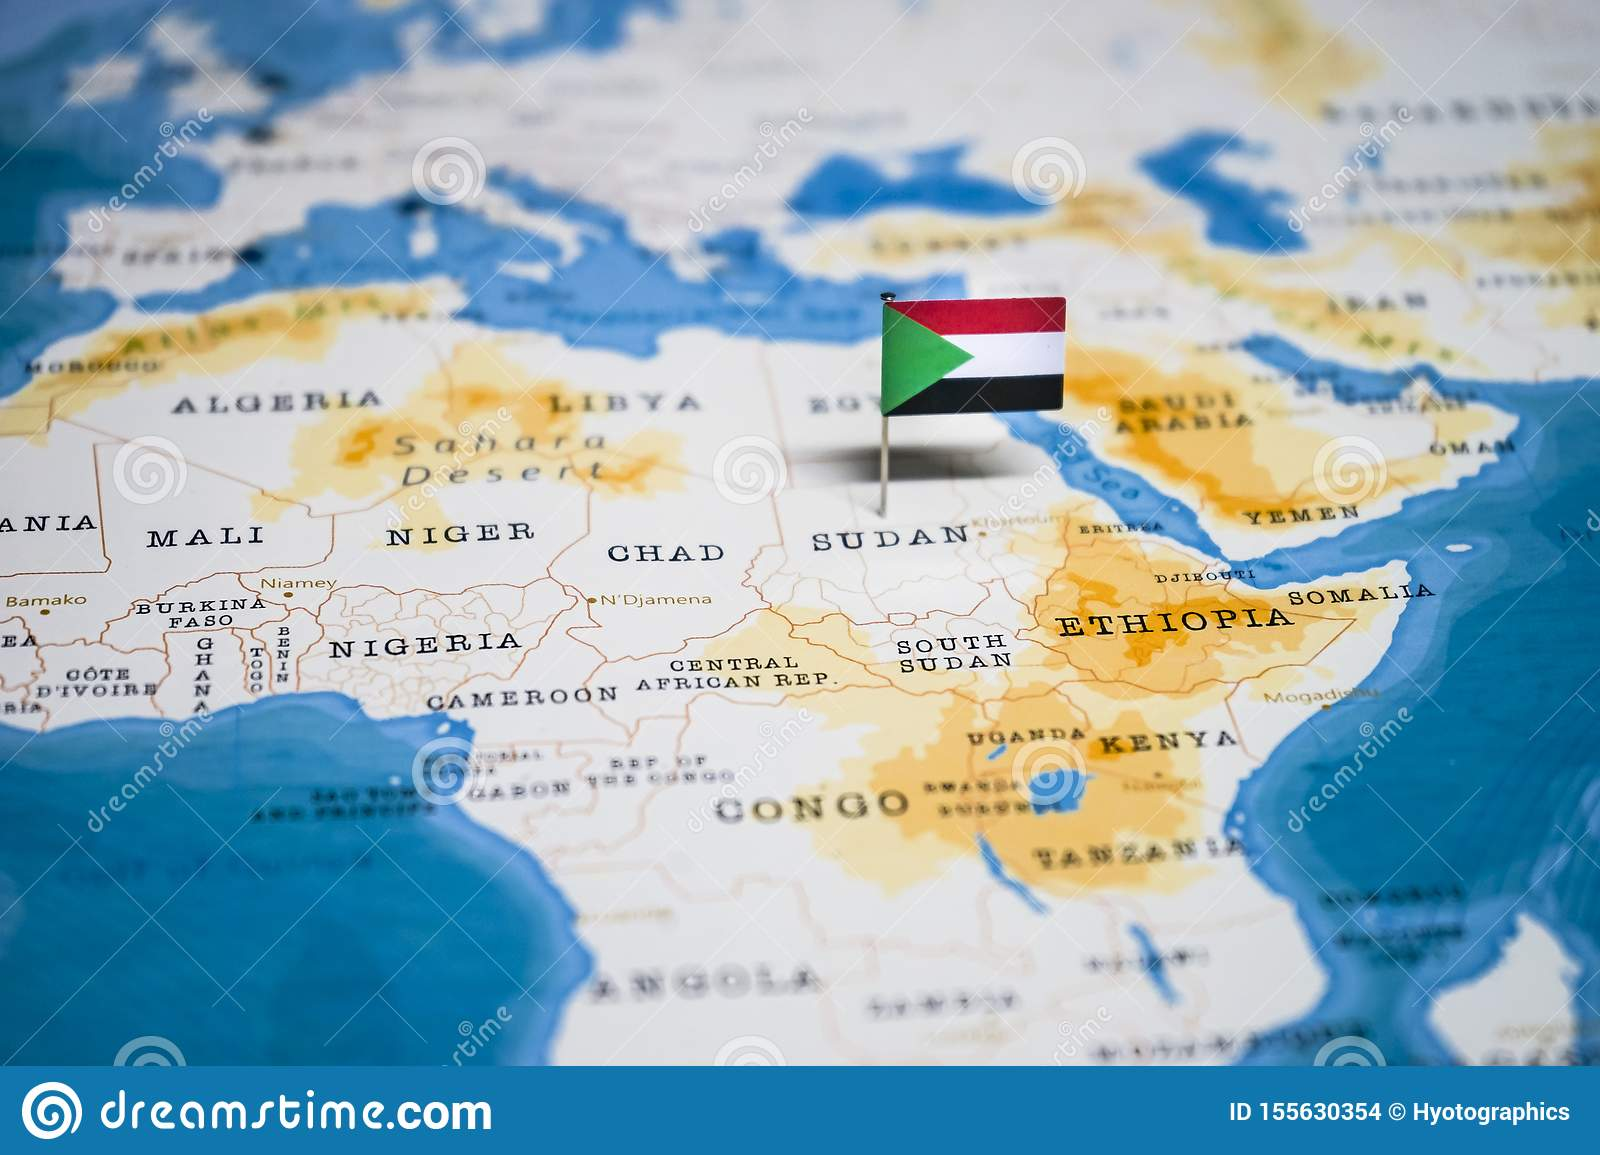 The Flag Of Sudan In The World Map Stock Photo - Image of ...